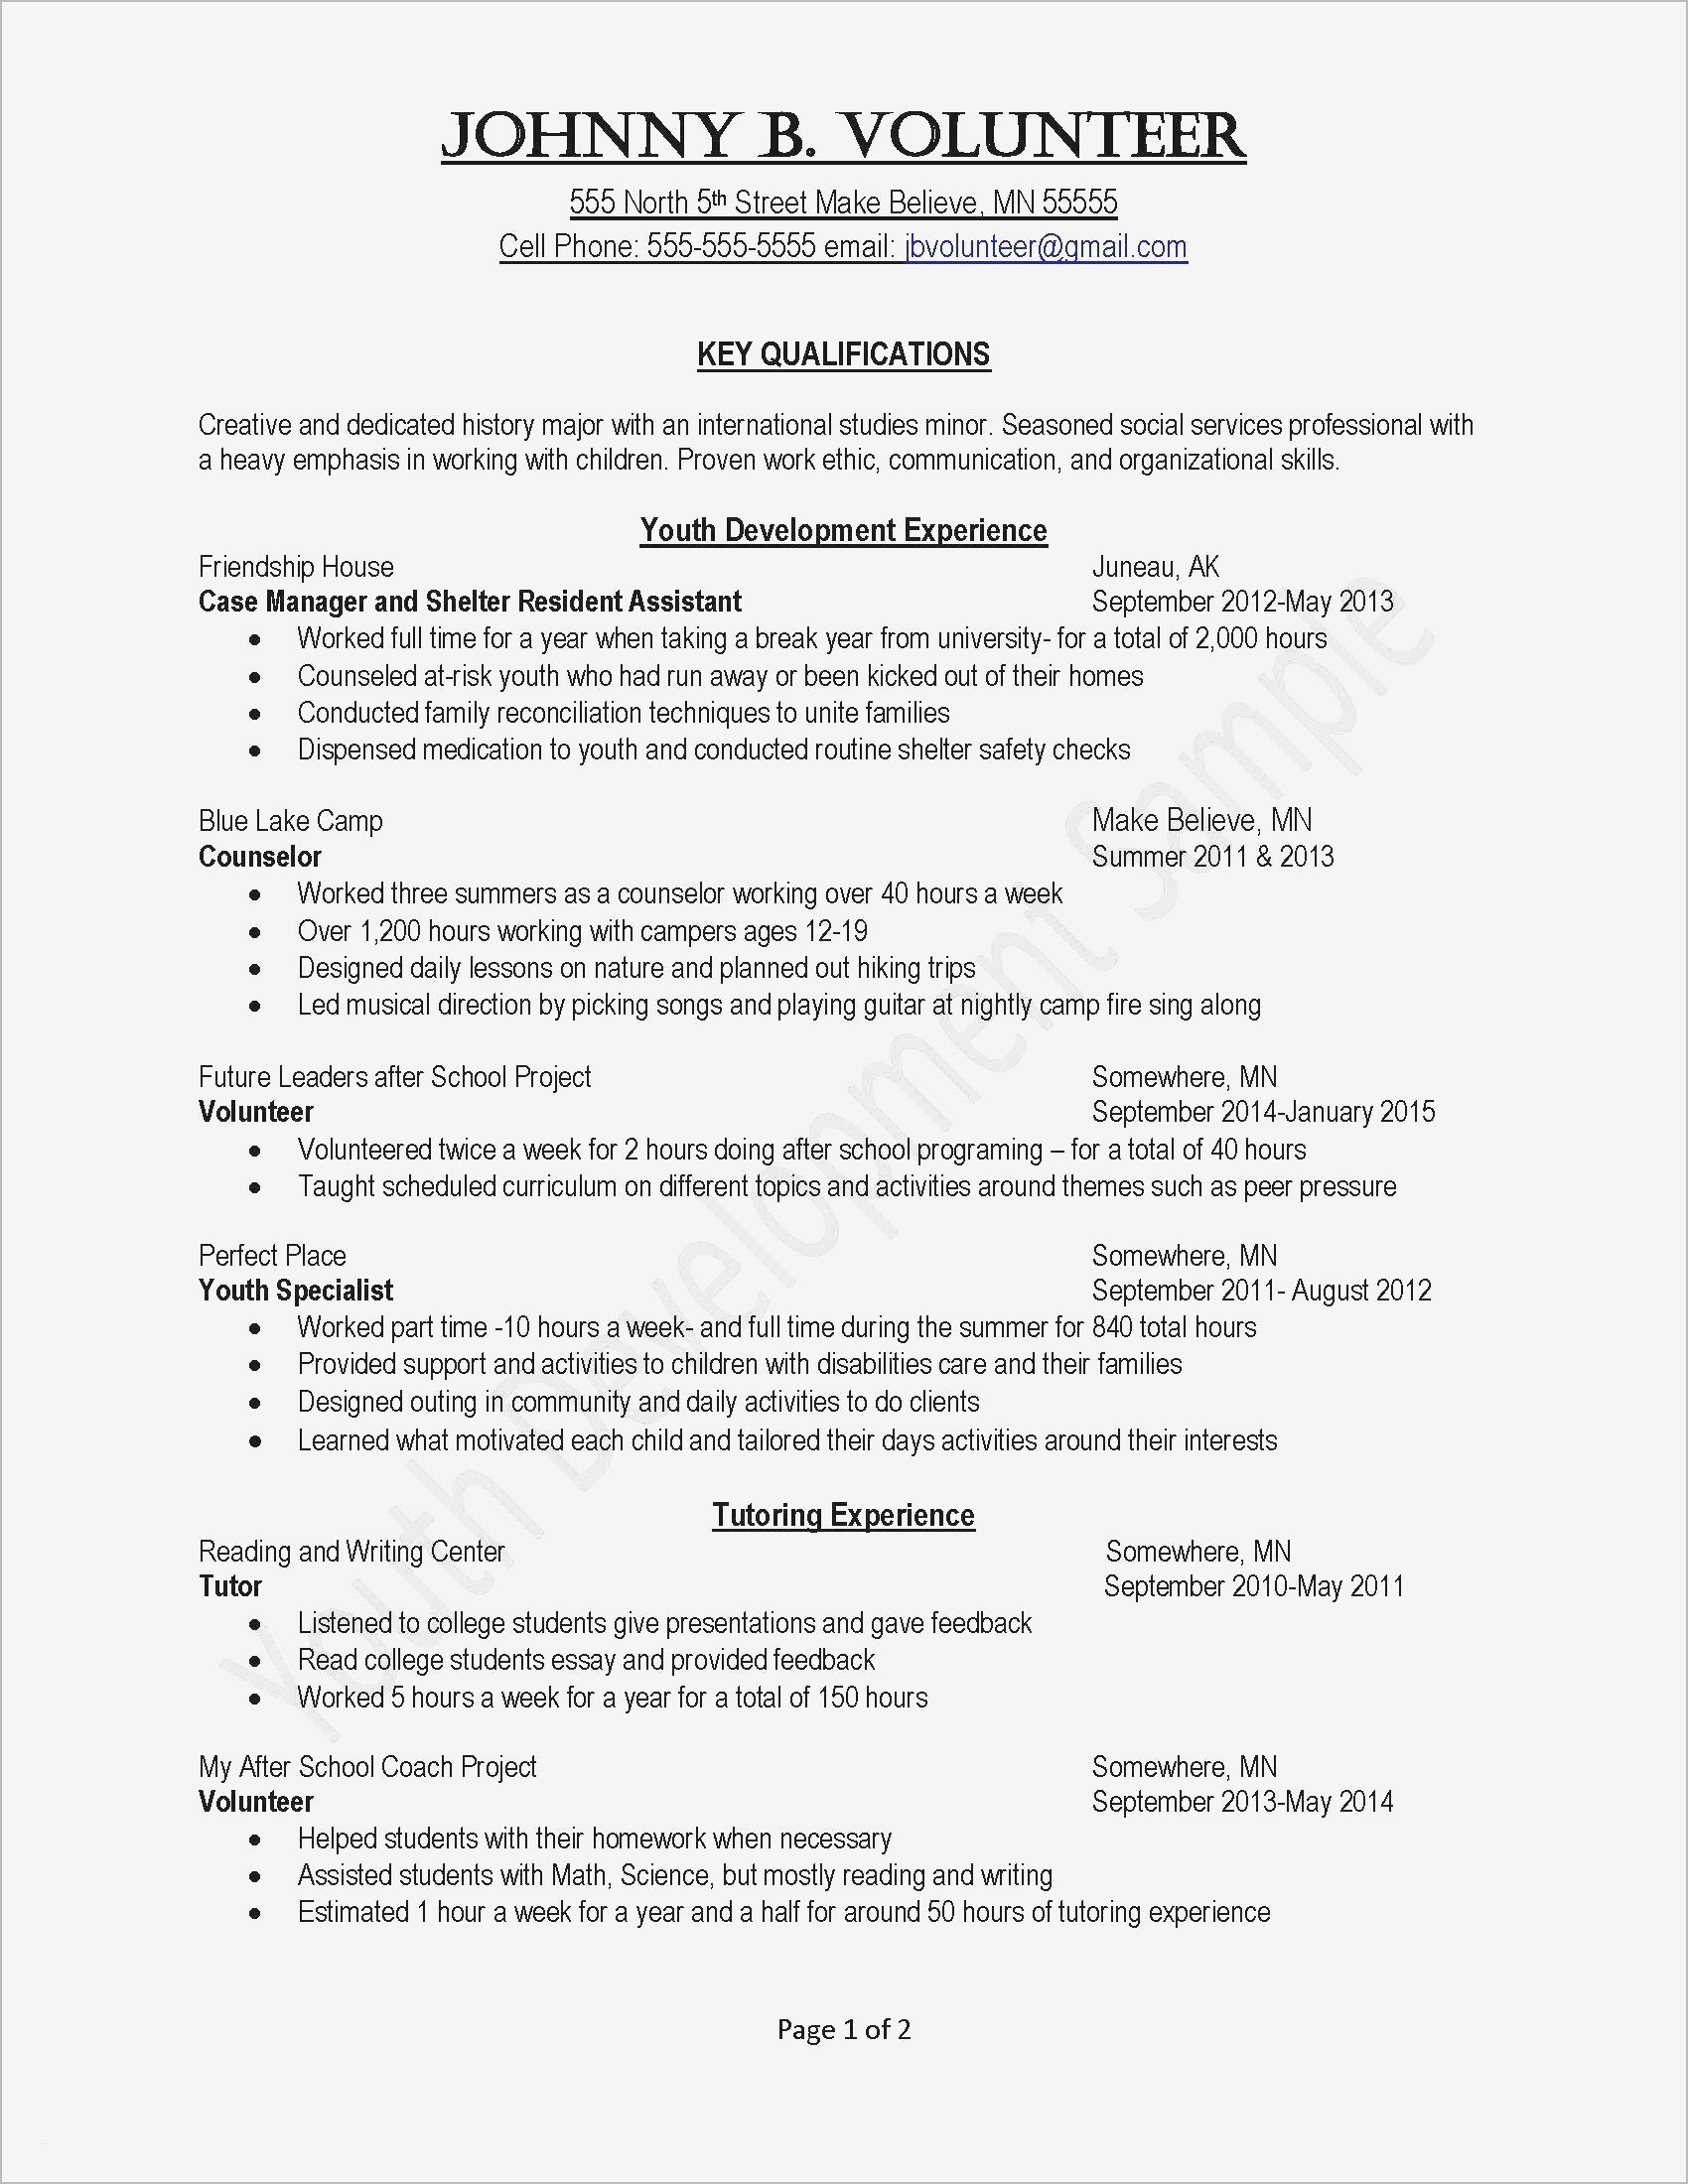 Interview Cover Letter Template - Resume Template Line Free Fresh Job Fer Letter Template Us Copy Od